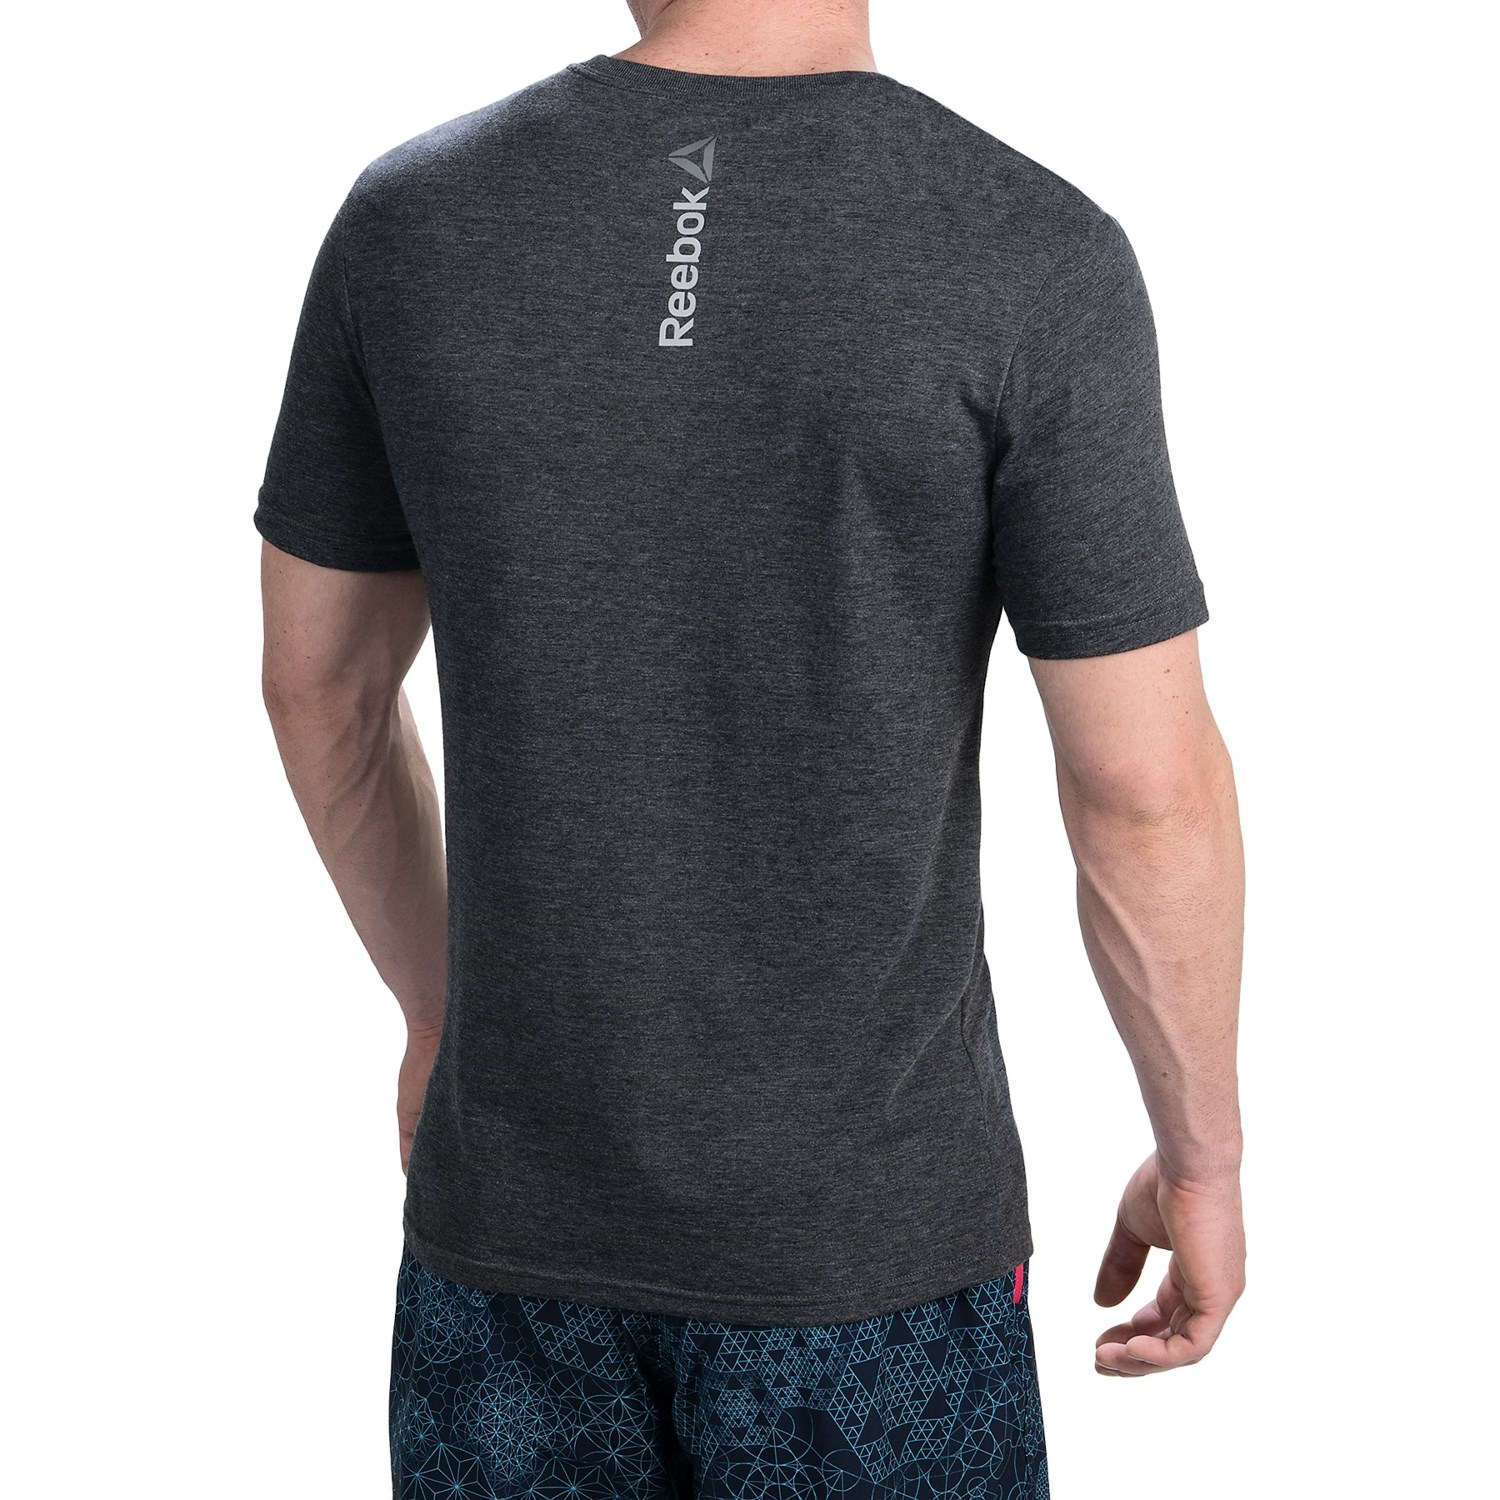 Reebok crossfit graphic t shirt for men save 43 for Reebok crossfit t shirts